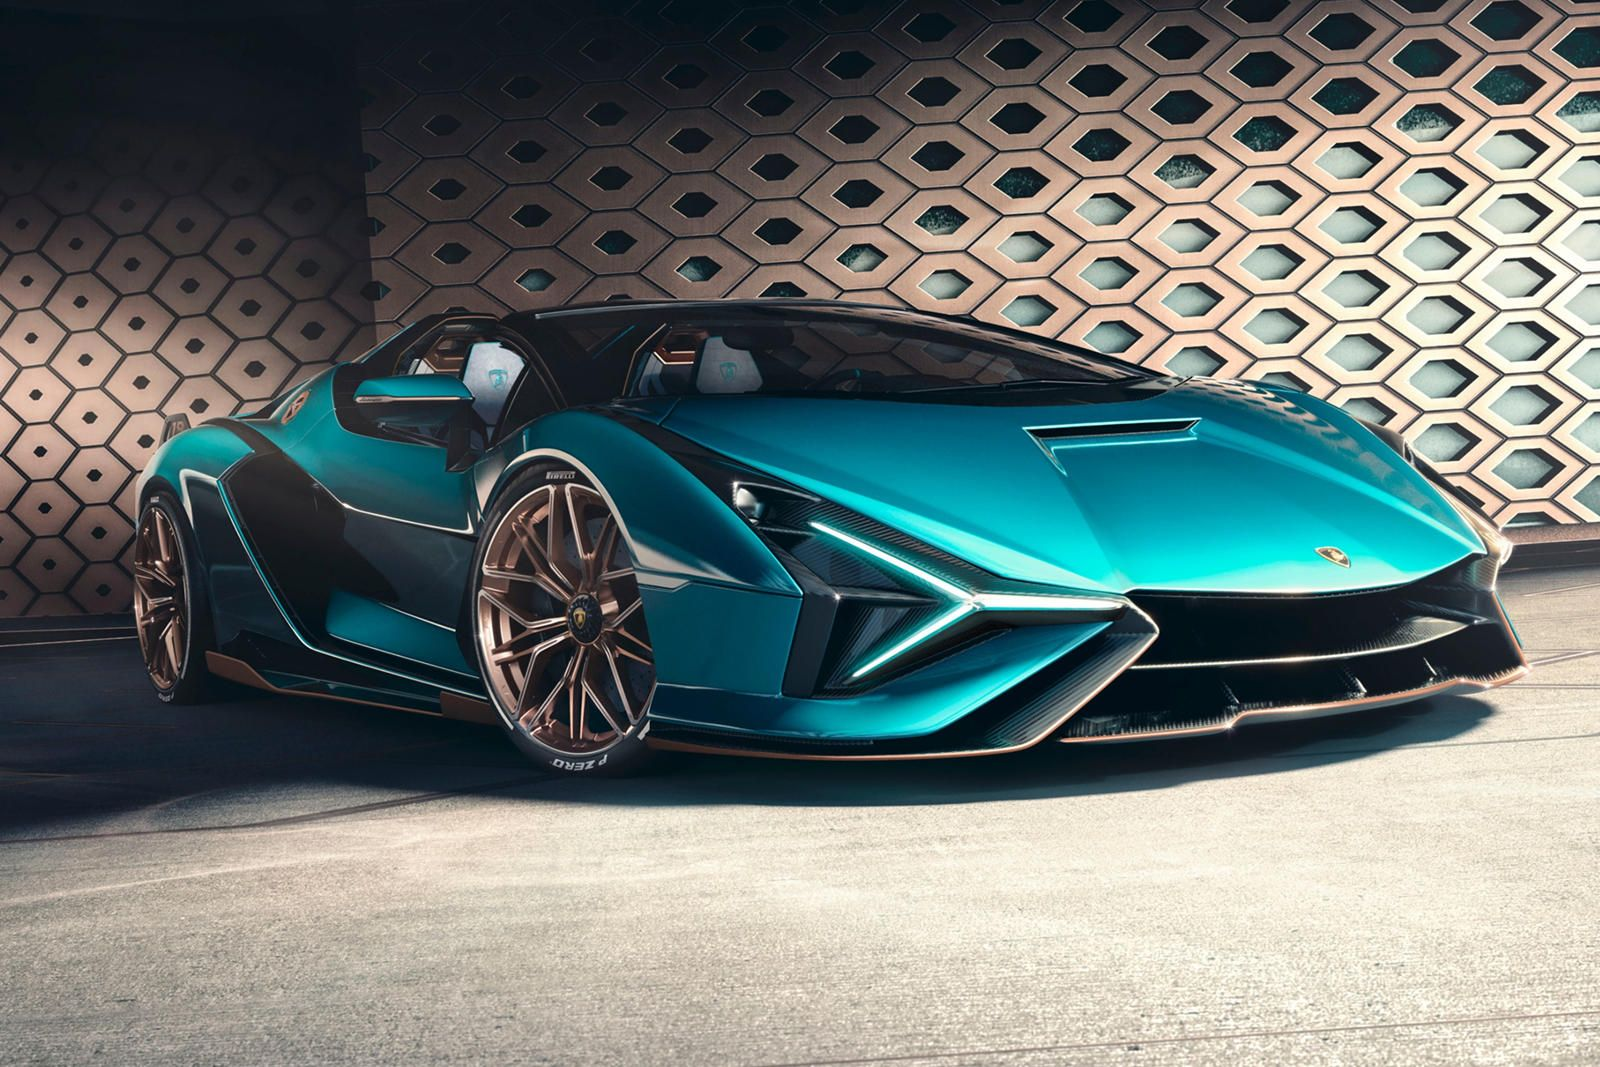 2021 Lamborghini Sian Roadster Is An 819 Horsepower Hybrid Supercar A New Lamborghini Flagship Has Arrived In 2020 Super Cars Roadsters Lamborghini